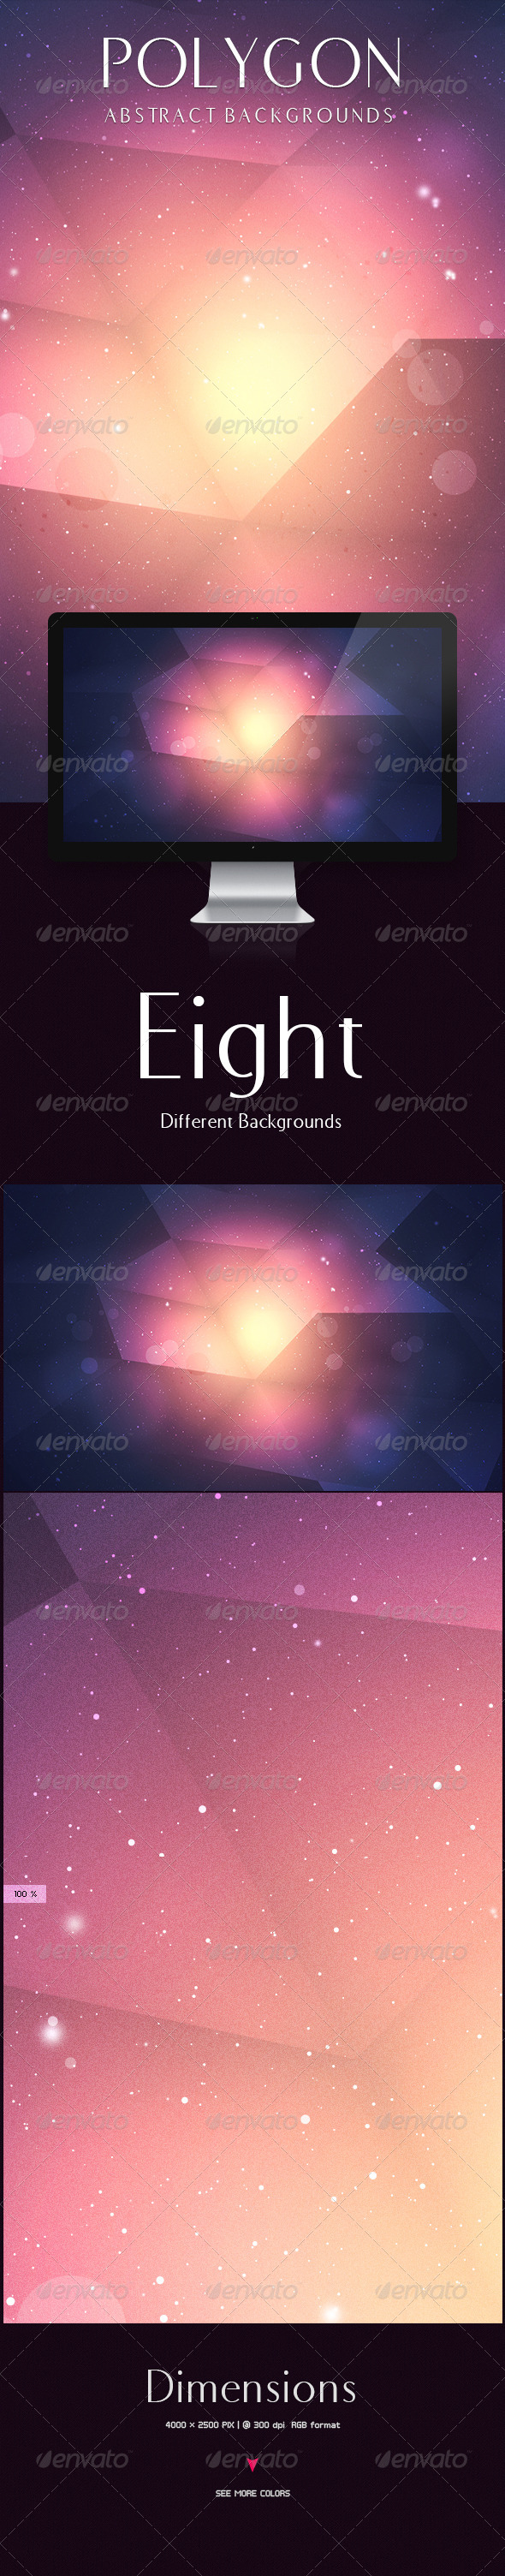 Polygon Backgrounds - Abstract Backgrounds